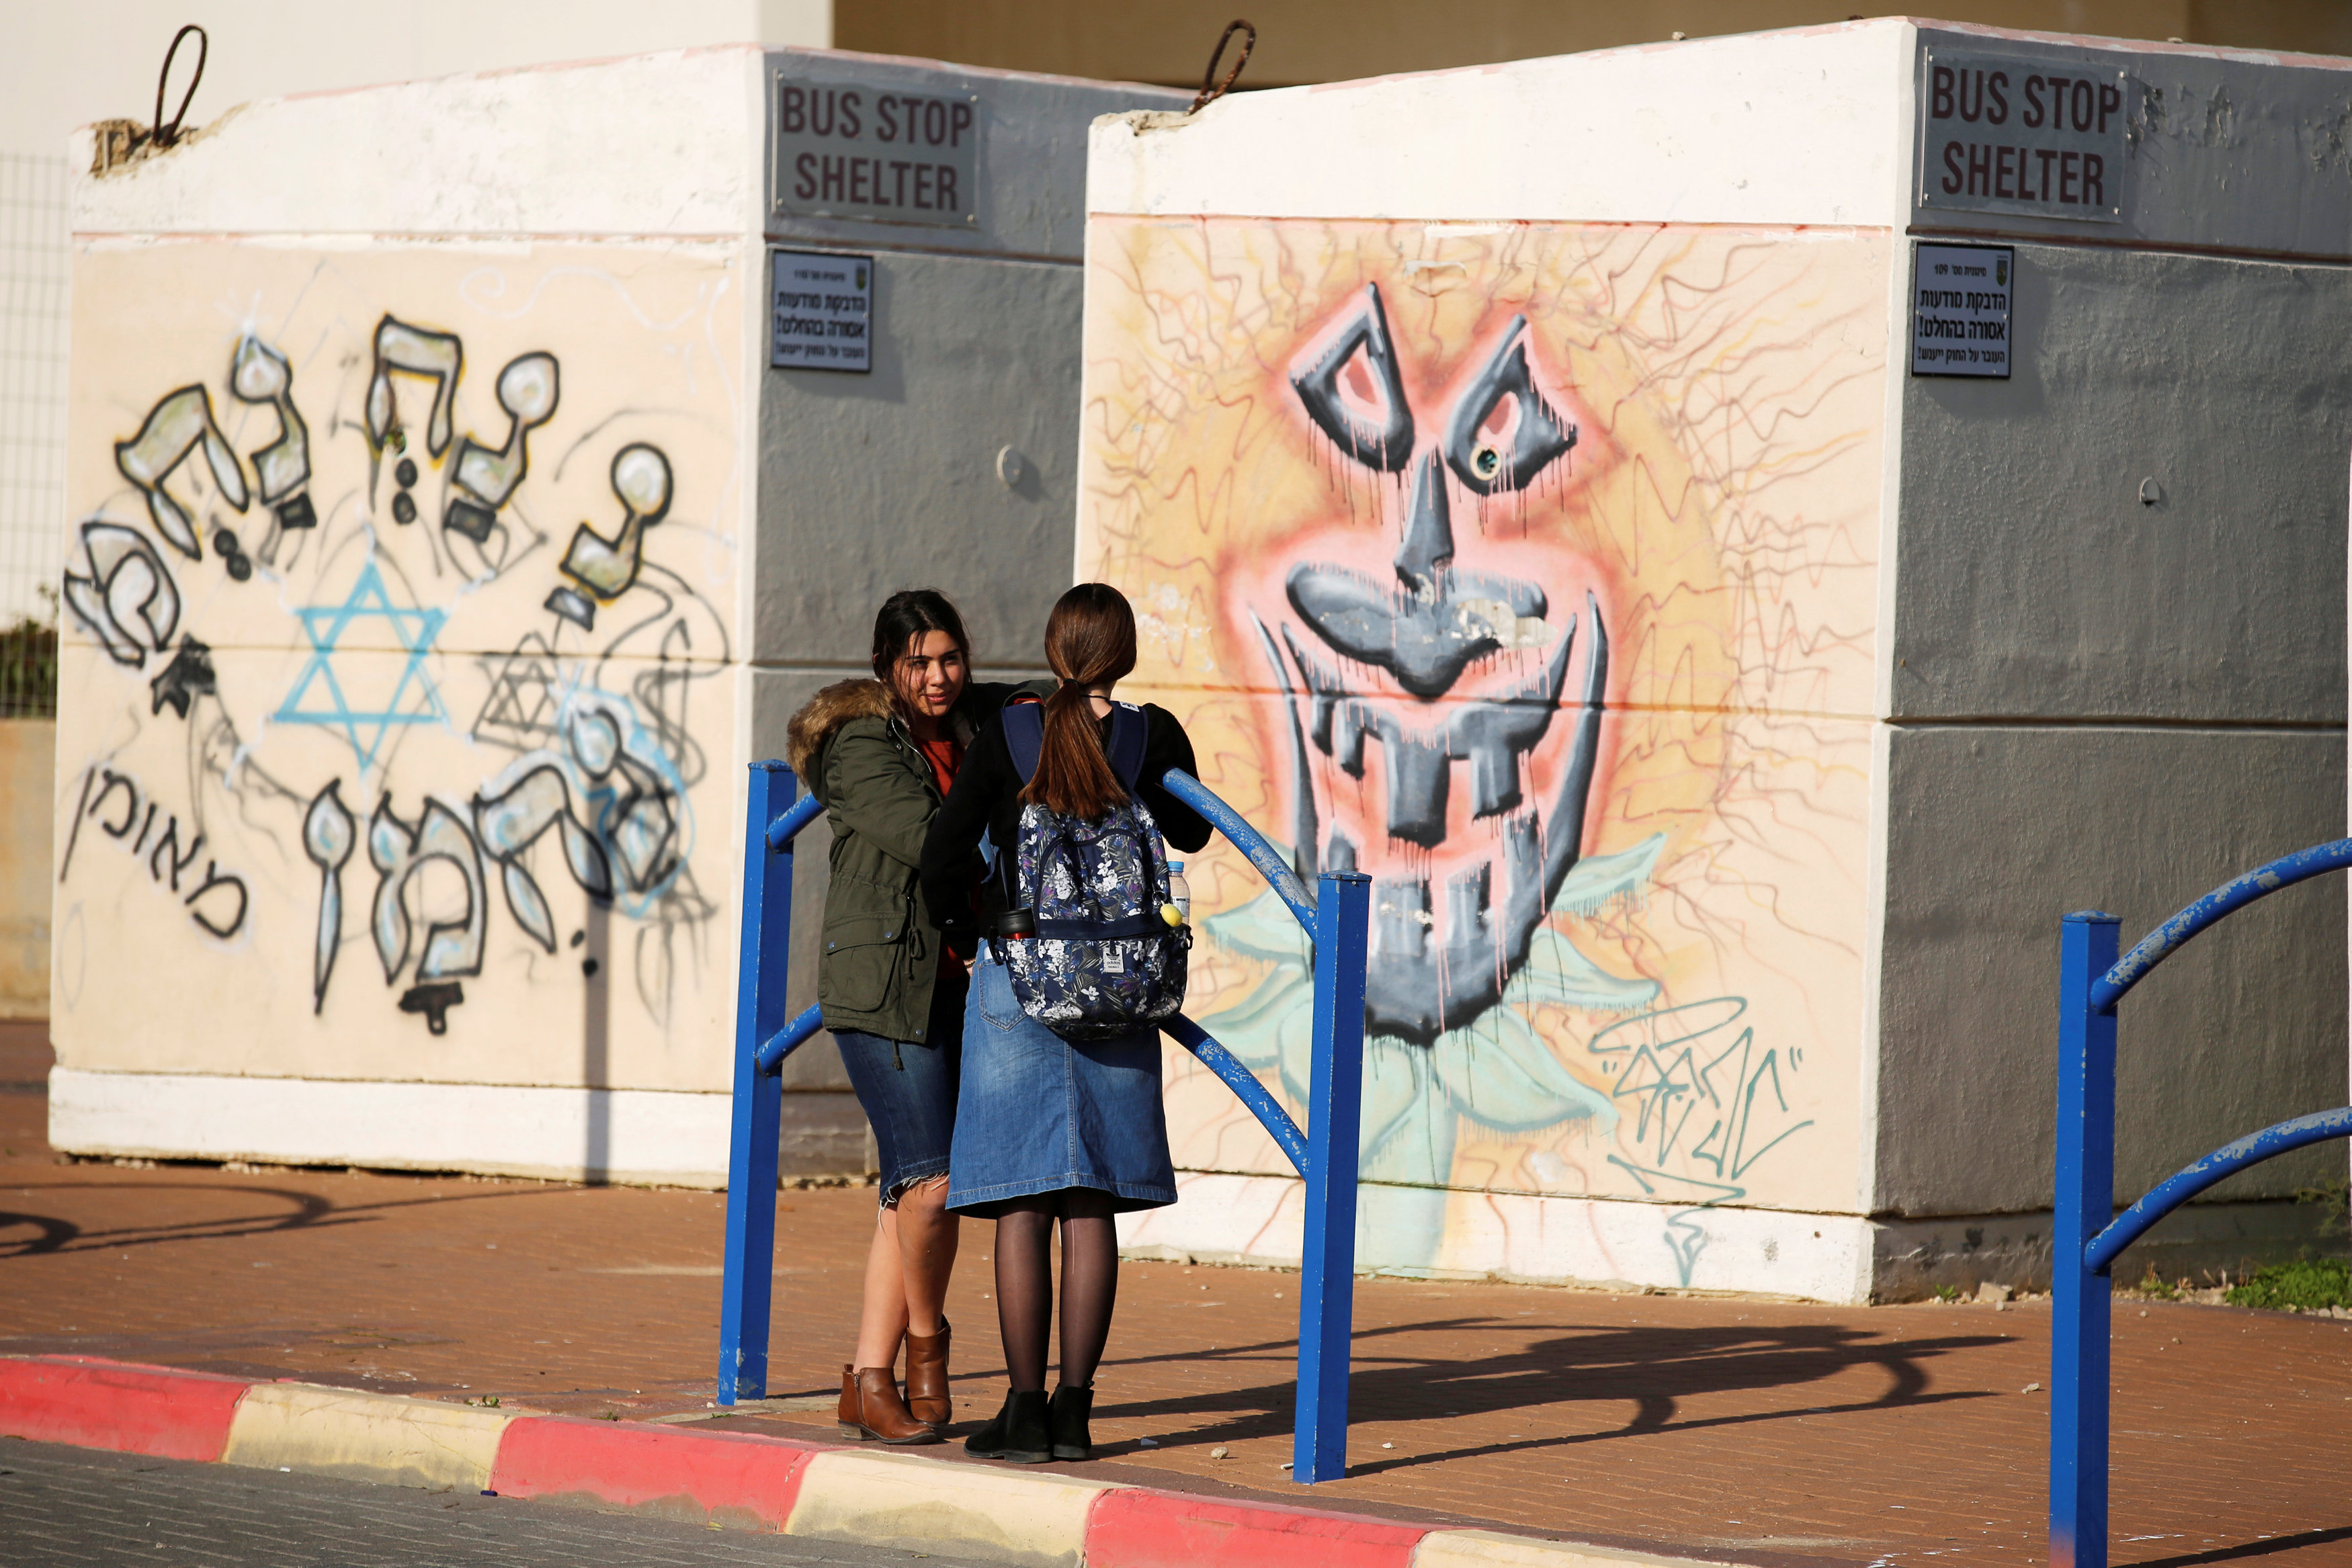 Schoolgirls stand next to bus stop bomb shelters in the southern Israeli city of Sderot, close to the Israeli border with the Gaza Strip January 8, 2018.